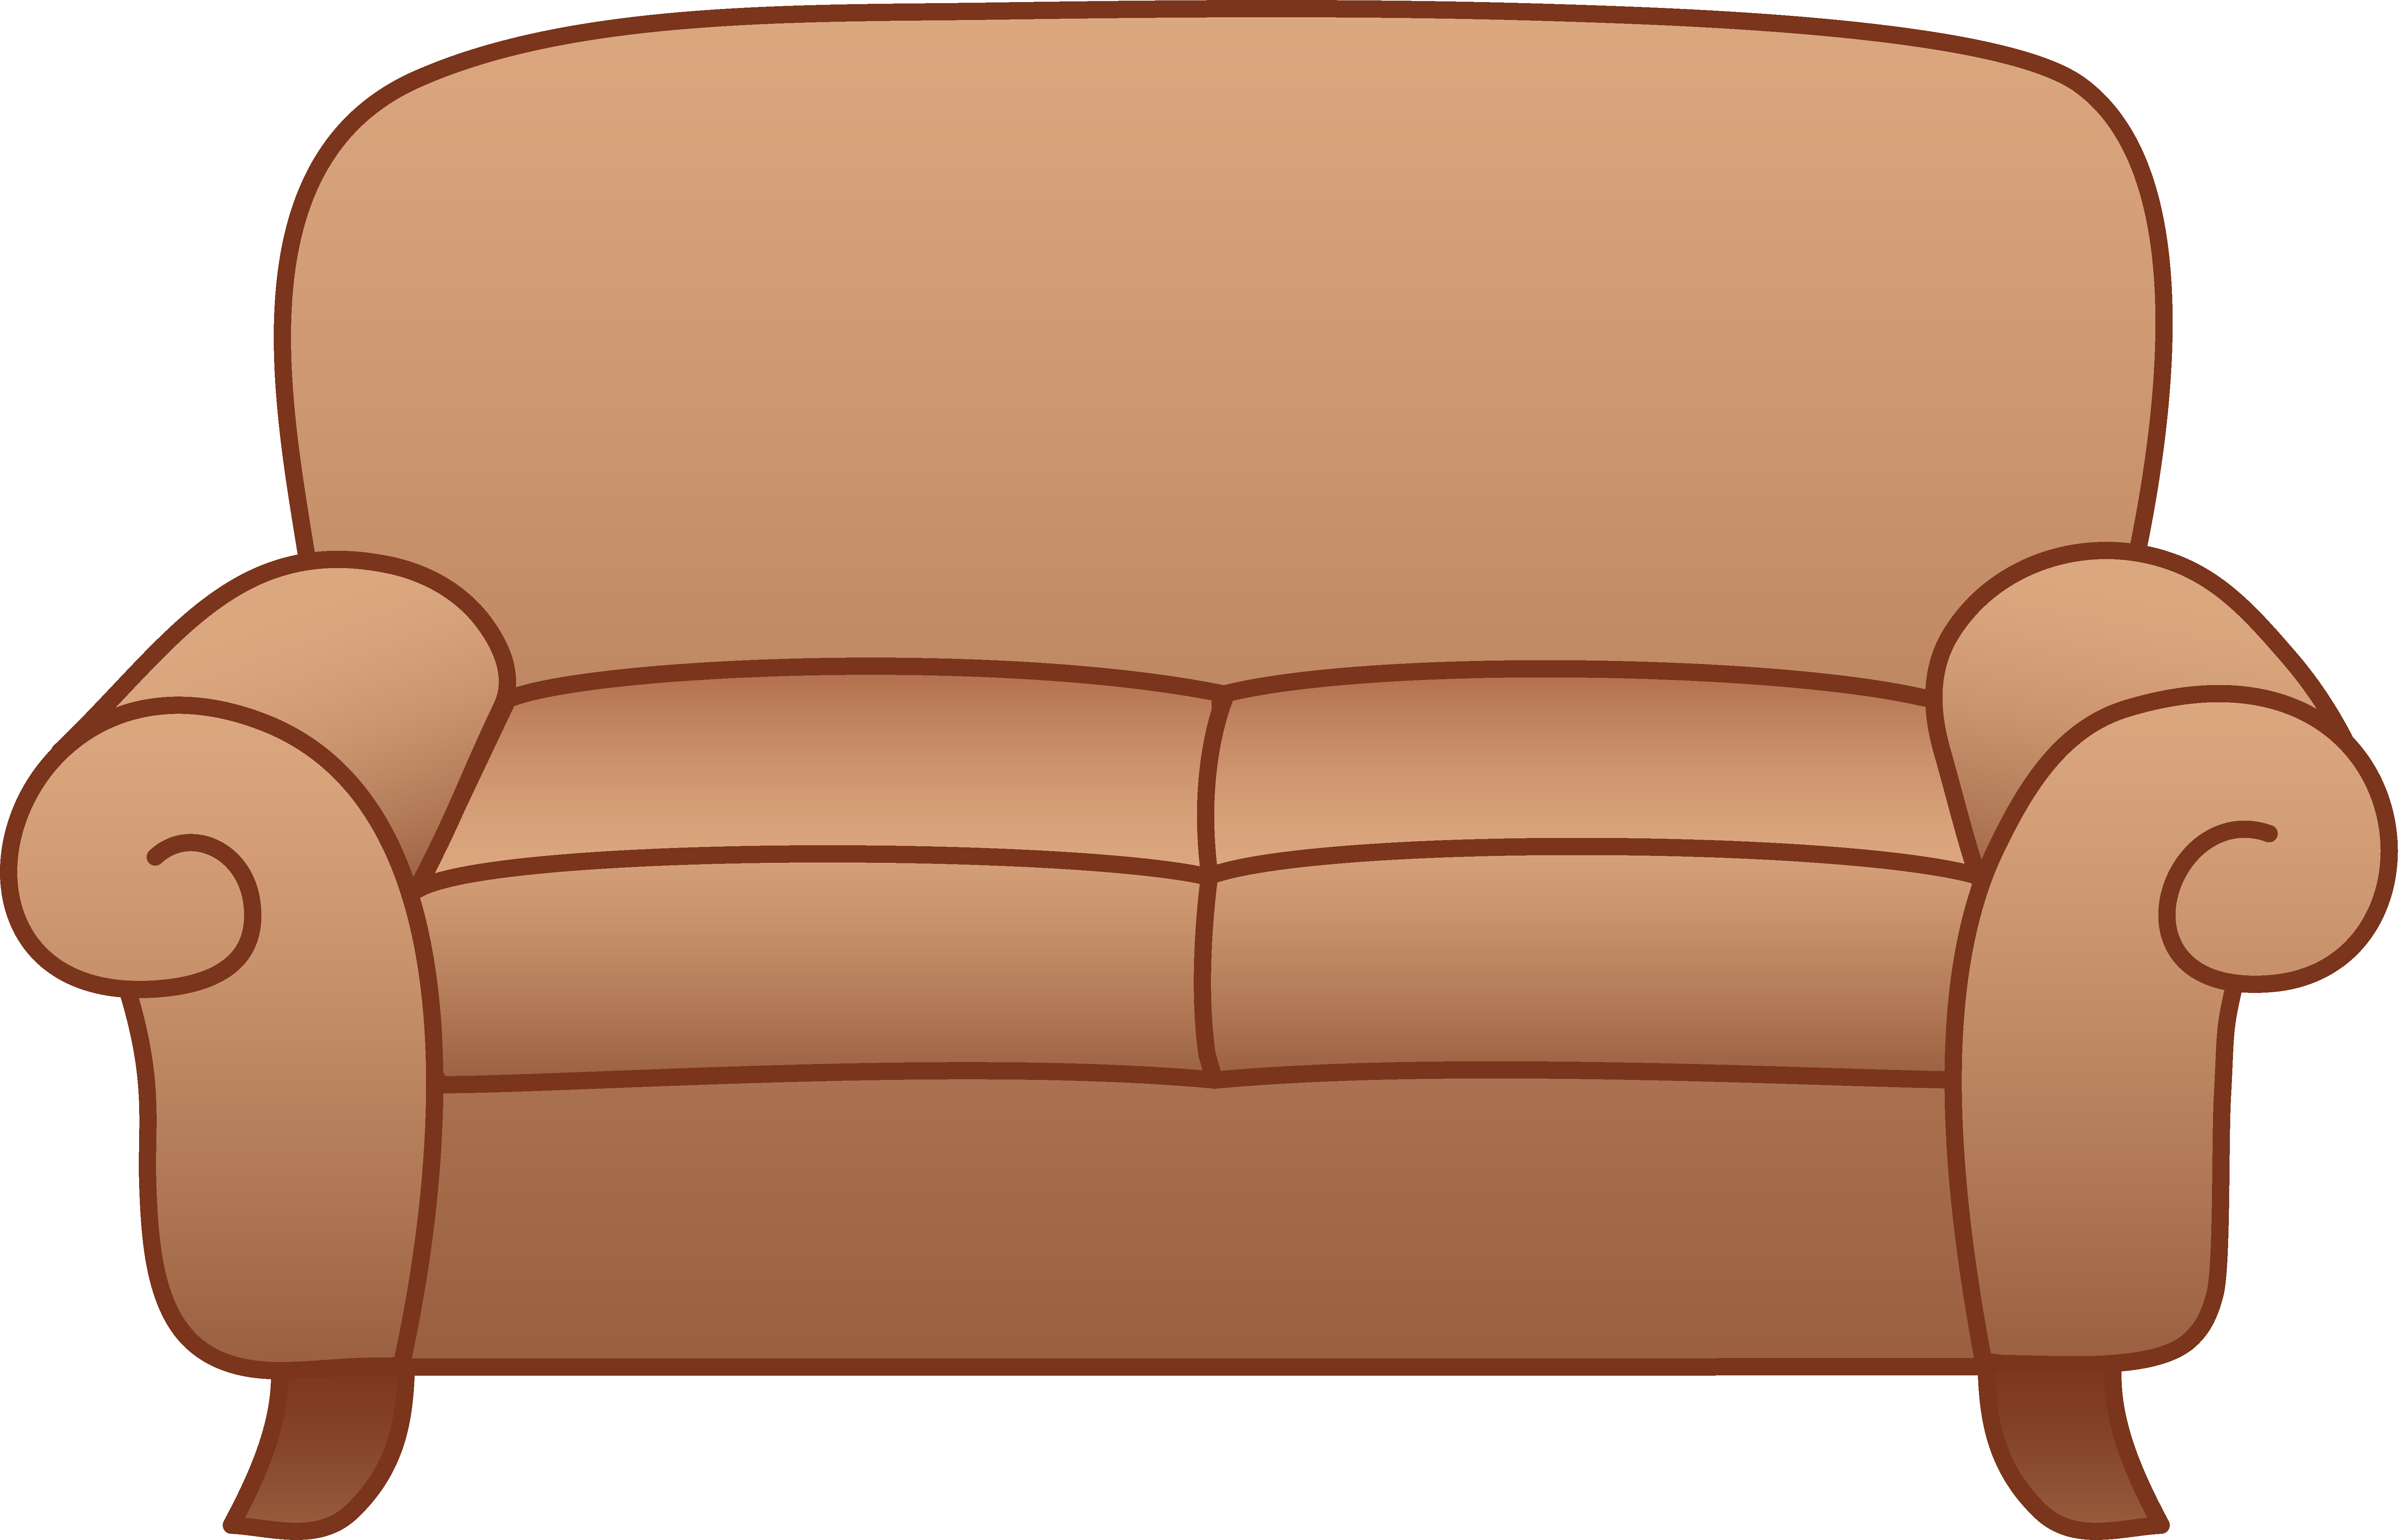 Couch Clip Art Free Clipart Panda Free Clipart Images